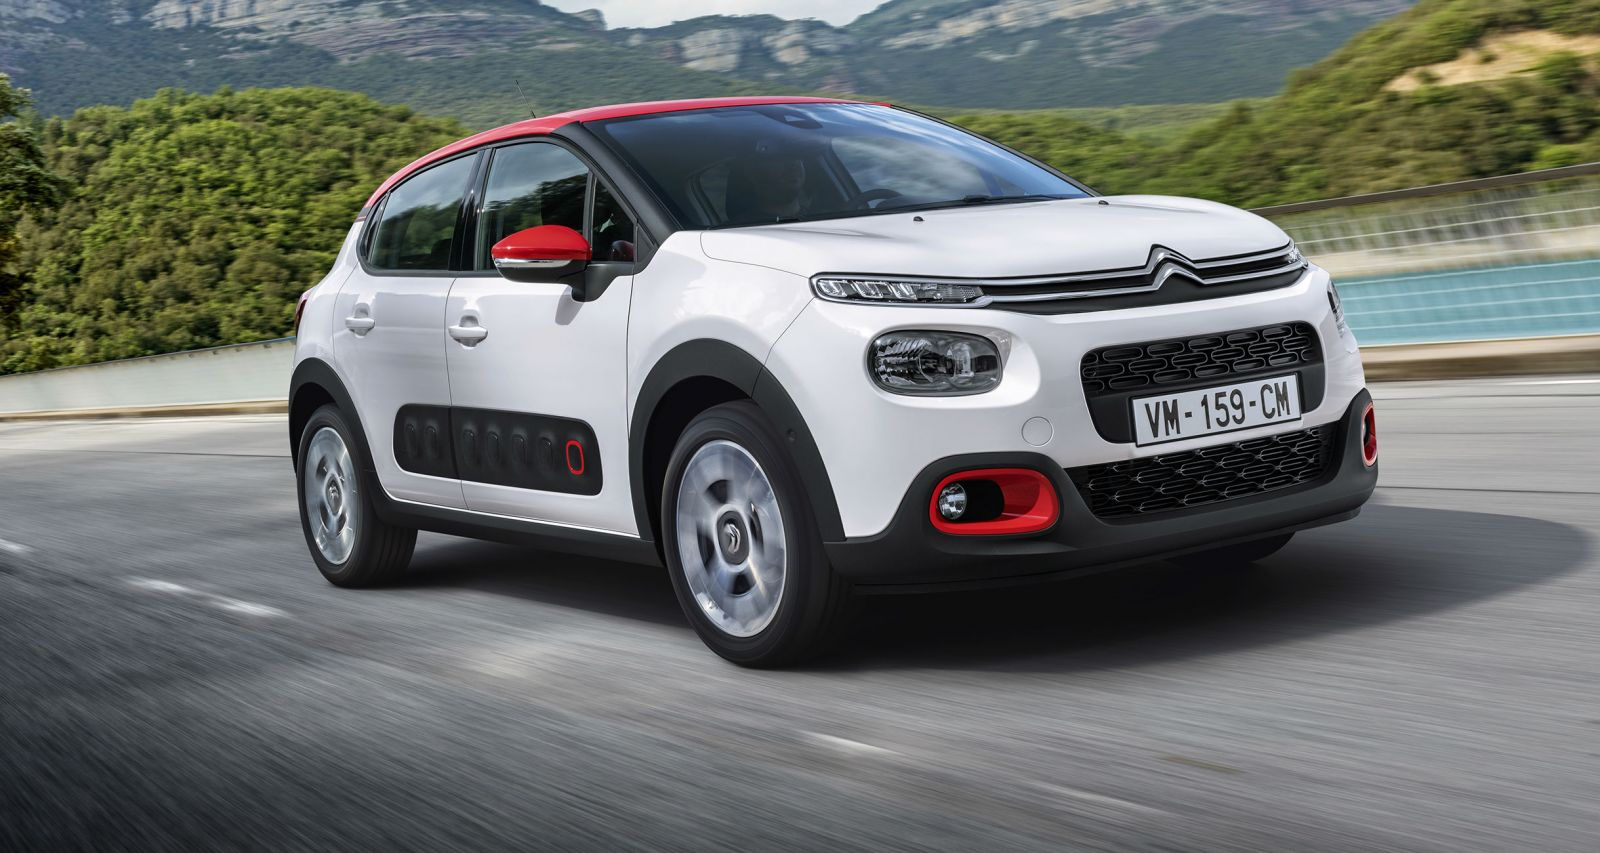 2017 Citroen C3 Officially Unveiled - Likely To Return To Australia